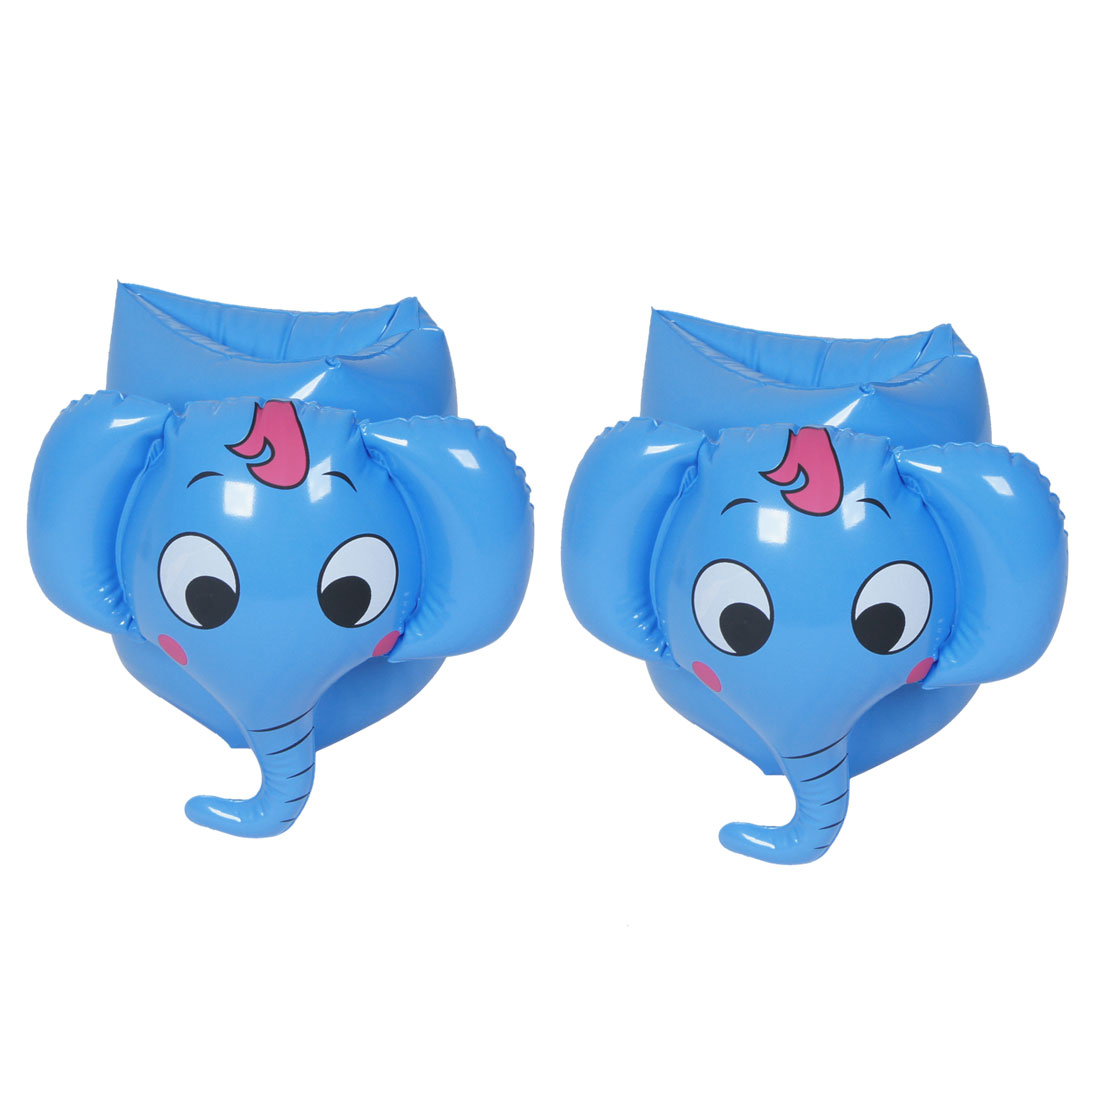 Pair Sky Blue Elephant Shaped Baby Inflatable Swim Arm Band for Children